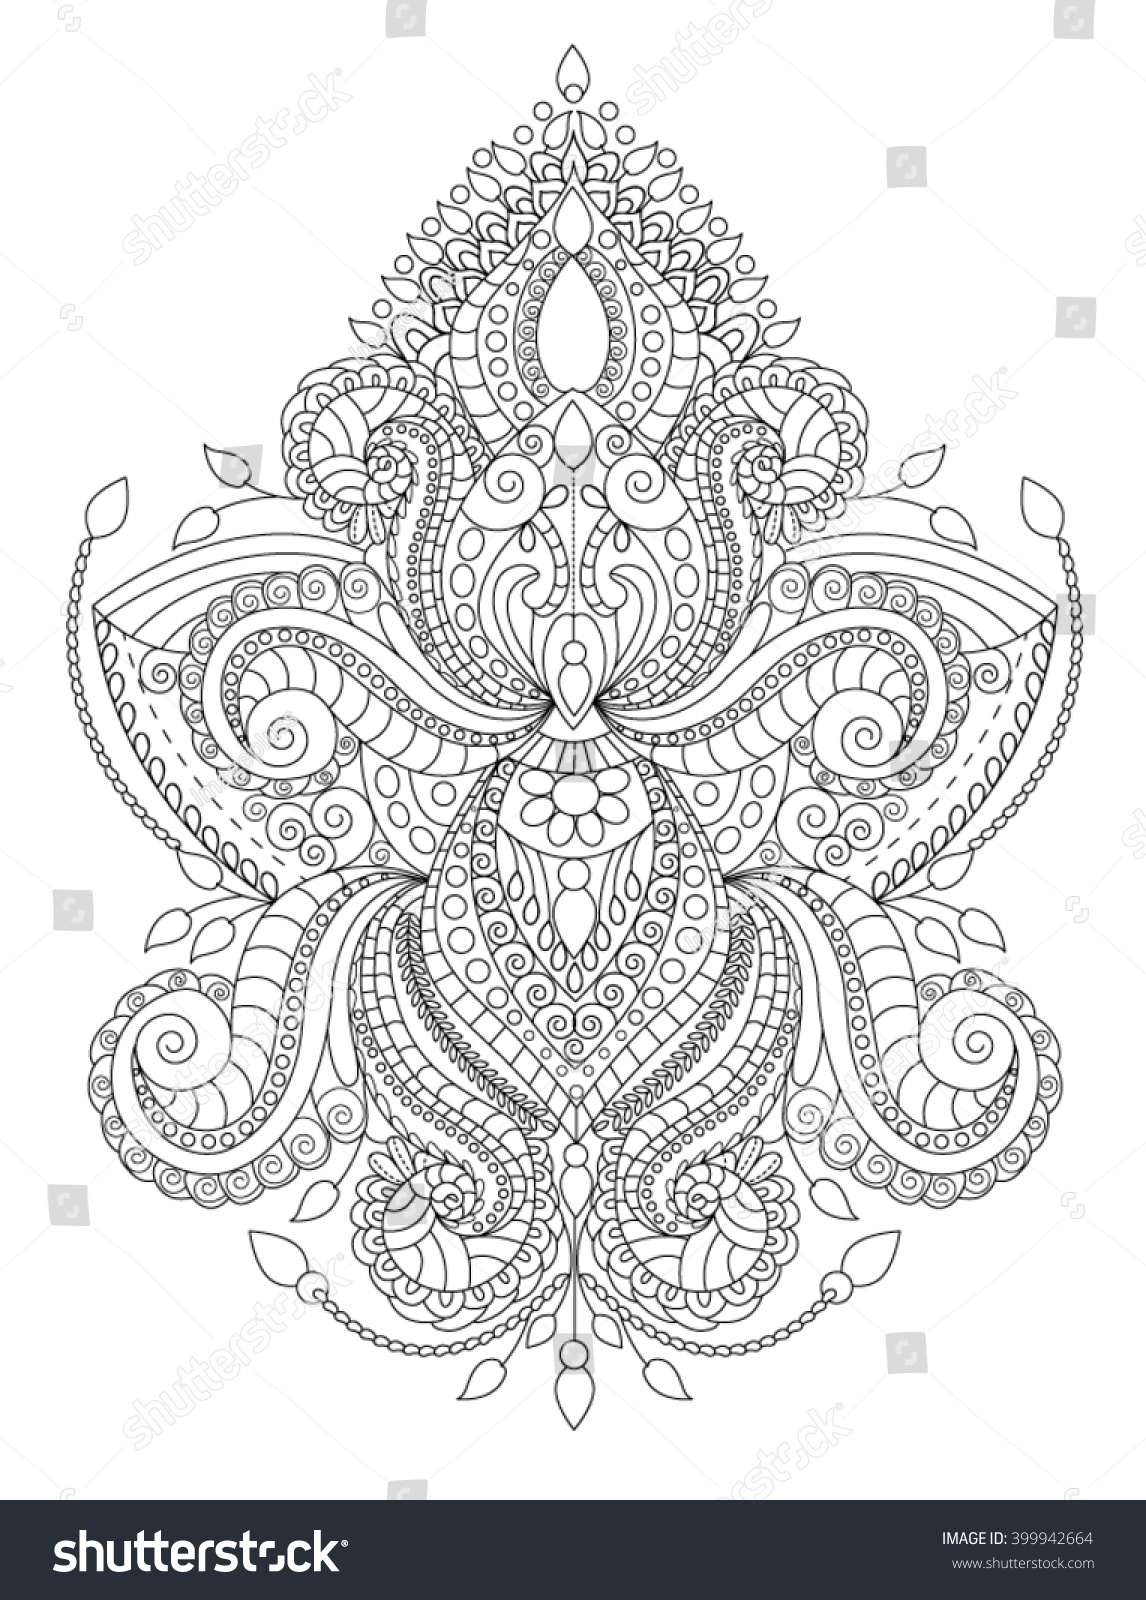 handdrawn henna abstract mandala flowers paisley stock vector